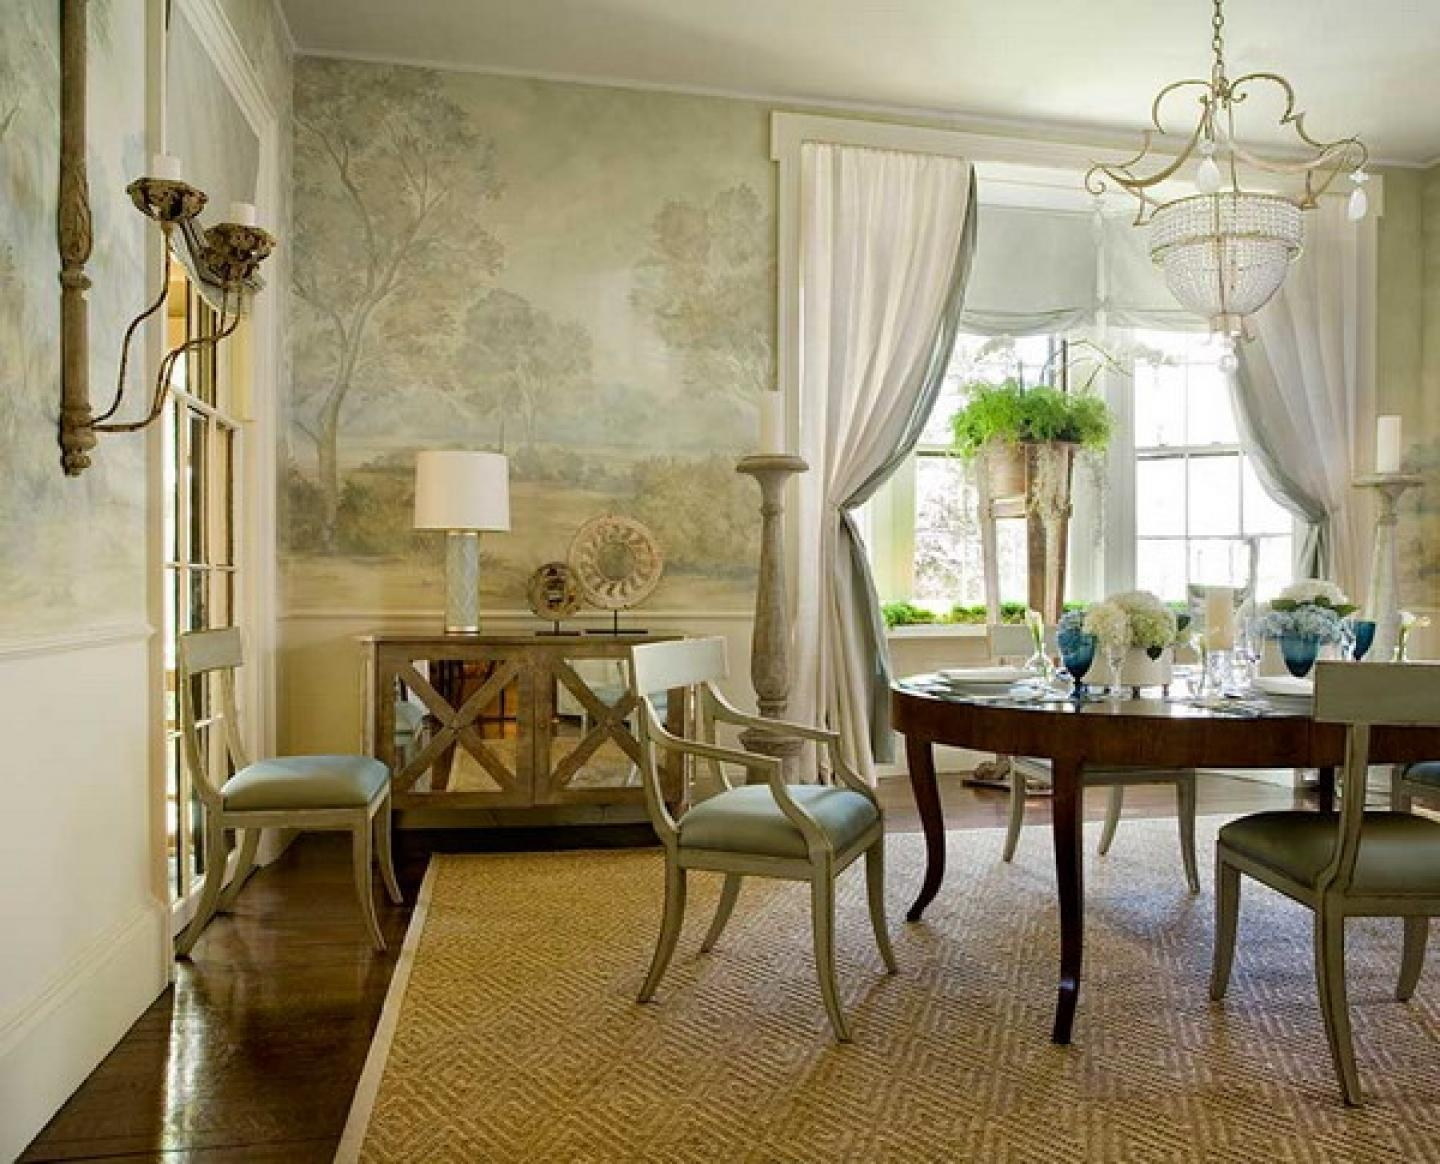 Formal Dining Room Wall Decor Remarkable 13 Wall Art For A Formal Within Formal Dining Room Wall Art (View 11 of 20)